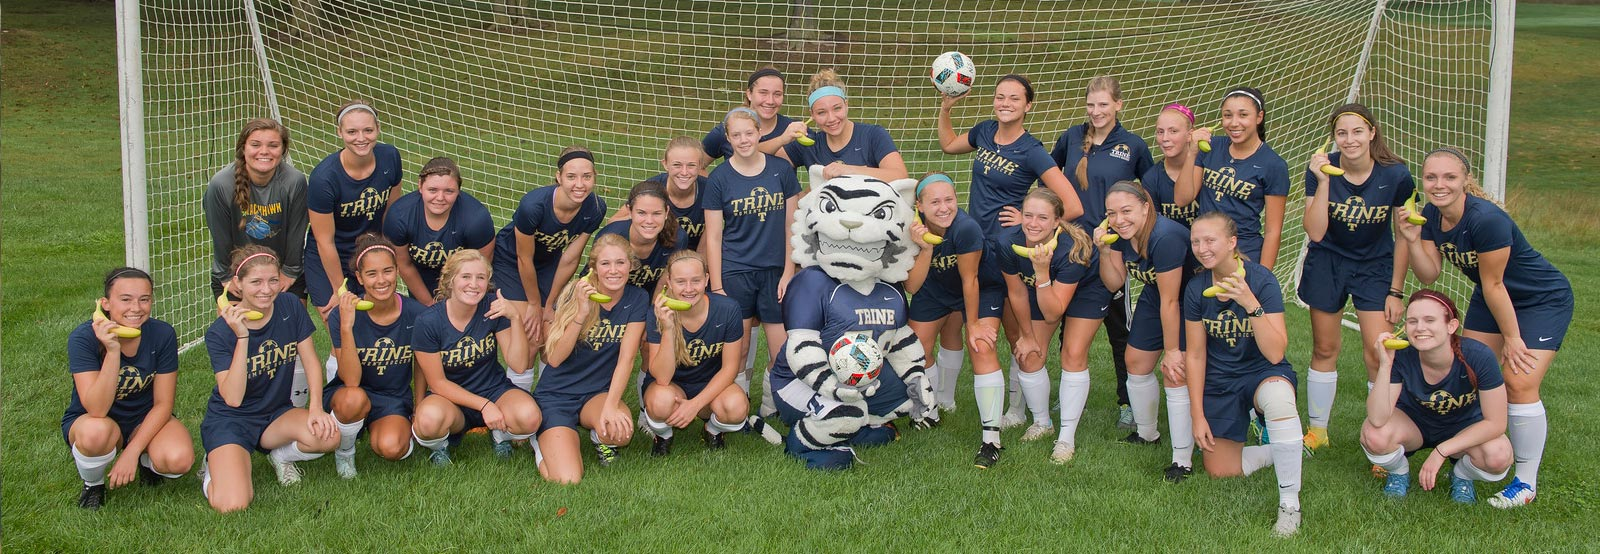 Soccer students celebrate national banana day